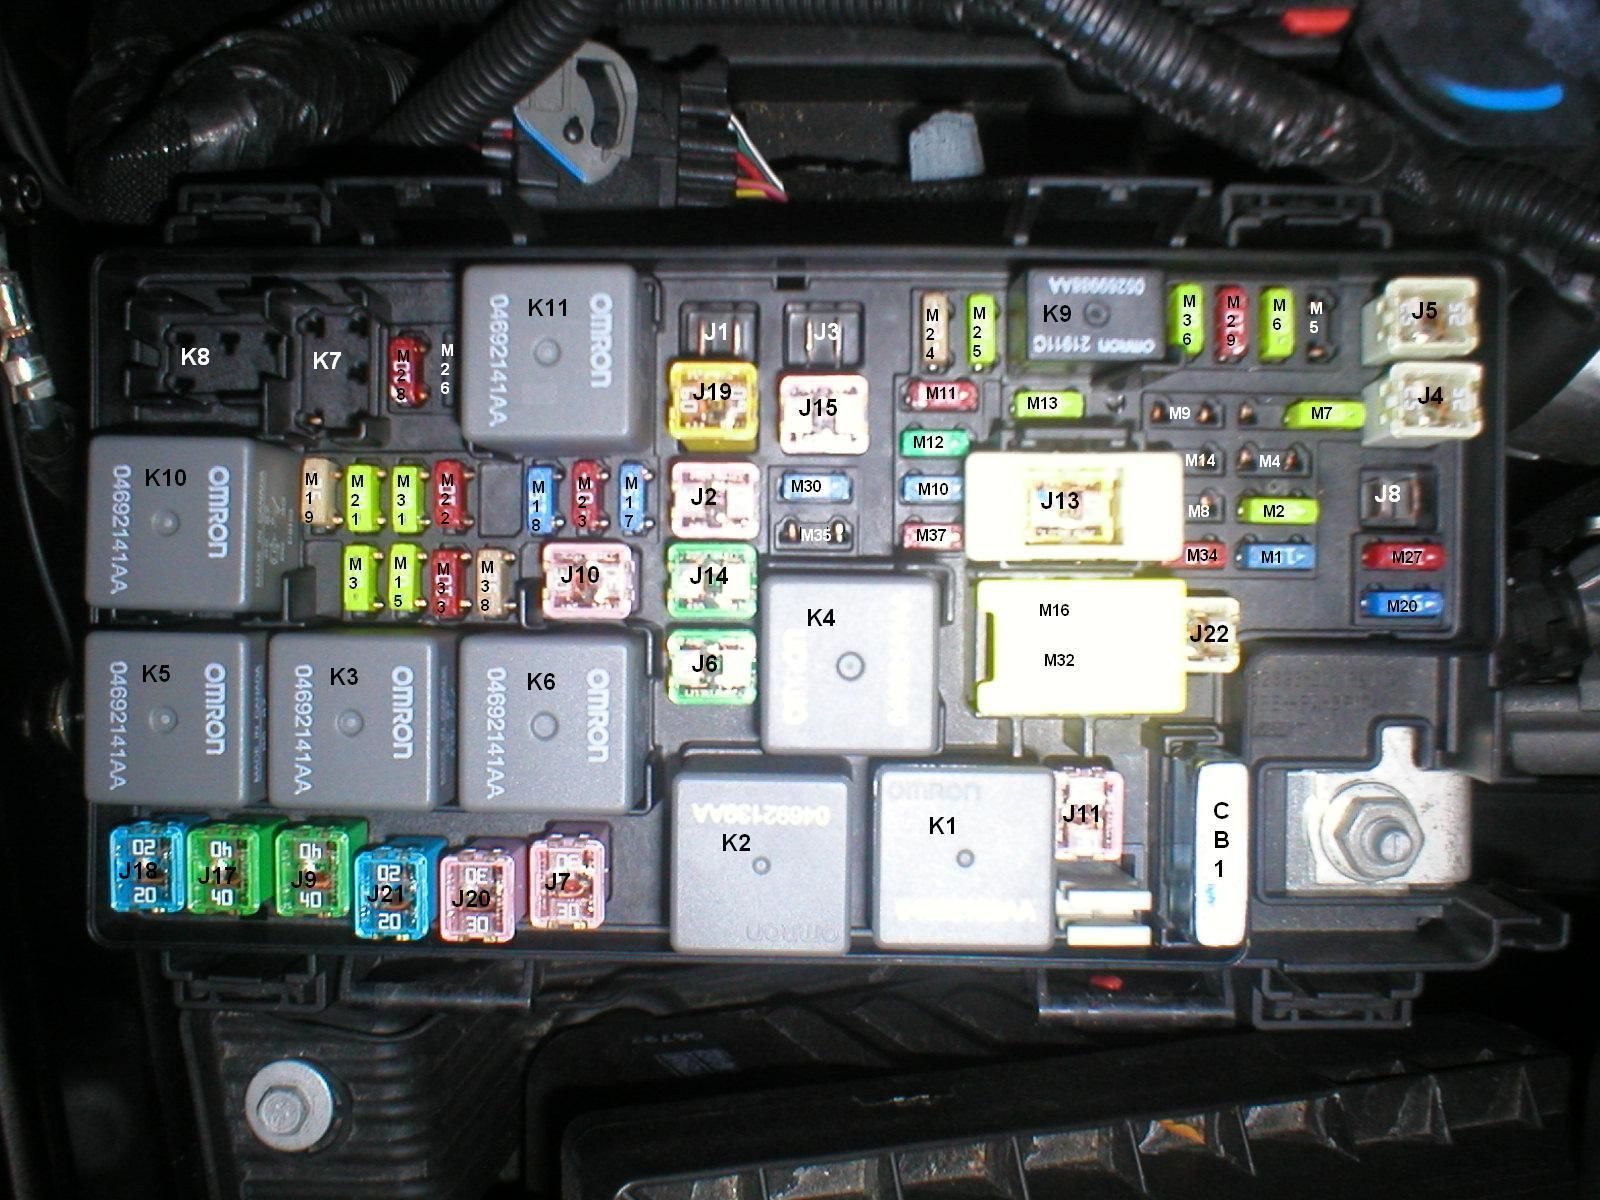 medium resolution of 2007 jeep fuse box wiring diagram 2000 jeep cherokee fuse wiring diagram 2007 jeep fuse box